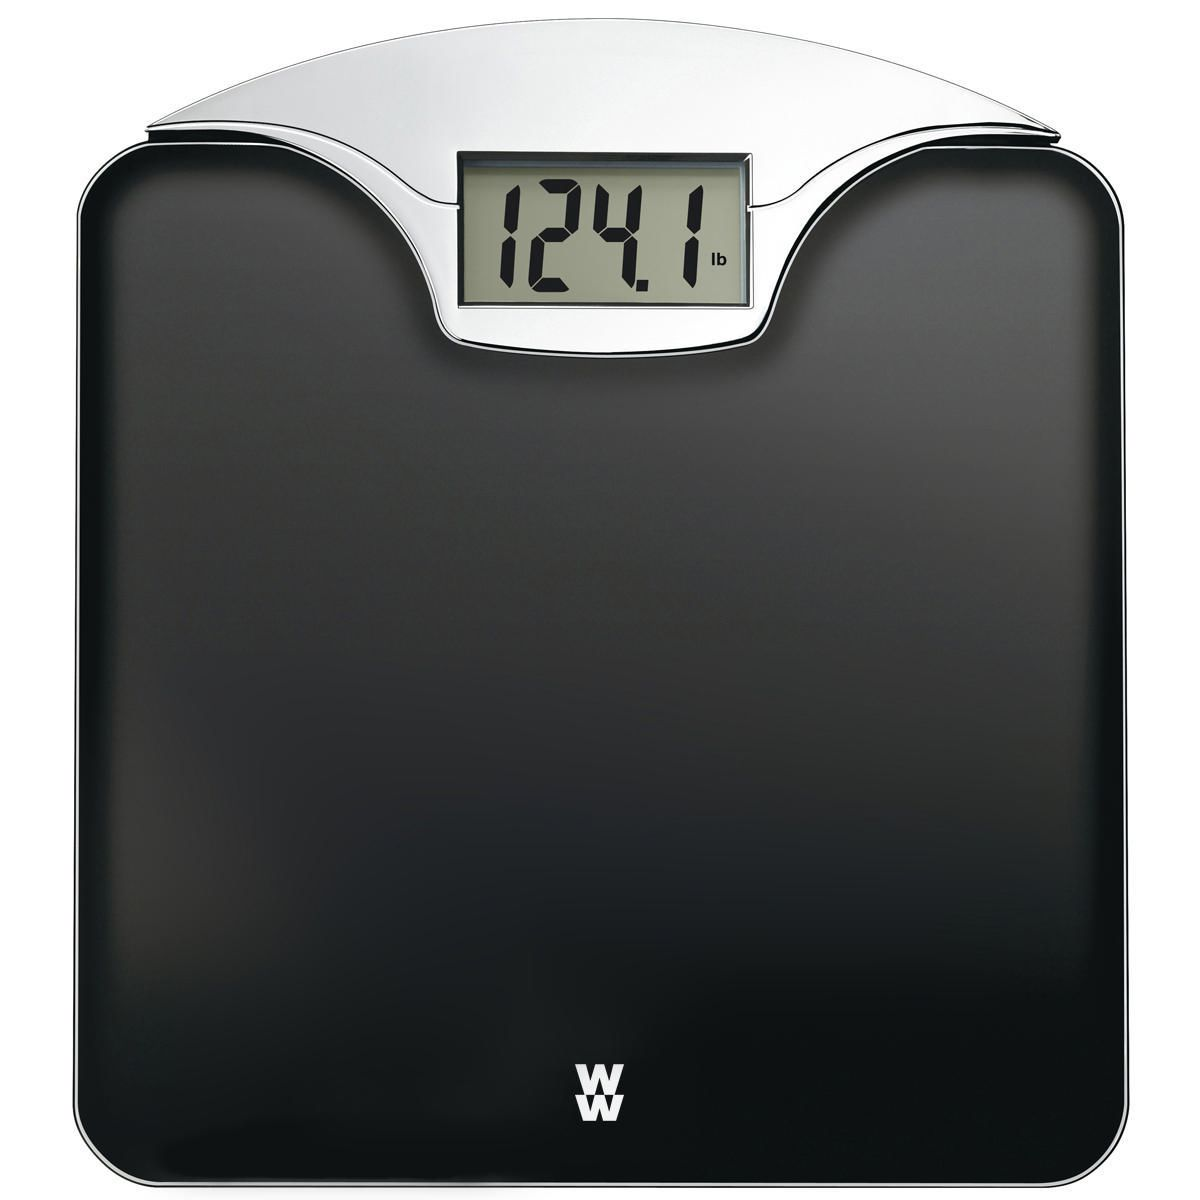 bathroom scale walmart. Weight Watchers  Digital Glass and Chrome Scale Bathroom Scales Weighing for Home at Walmart